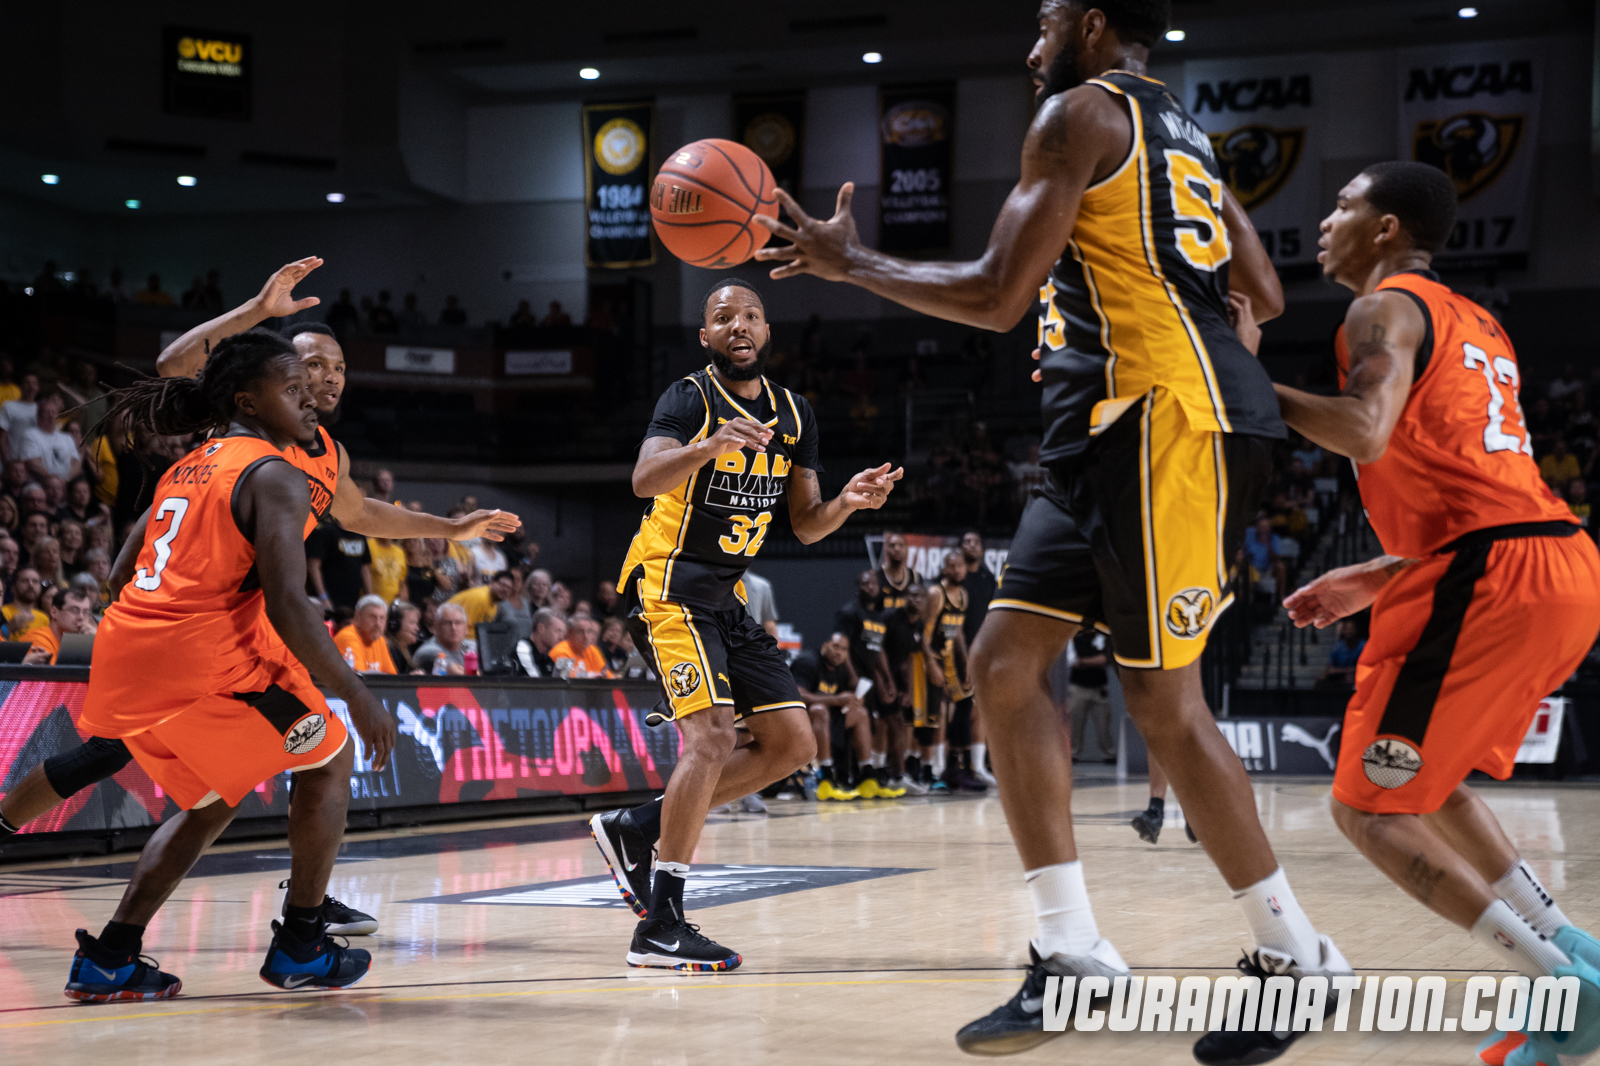 """Team Ram Nation gets """"Super 16"""" rematch with DRC in TBT first round"""